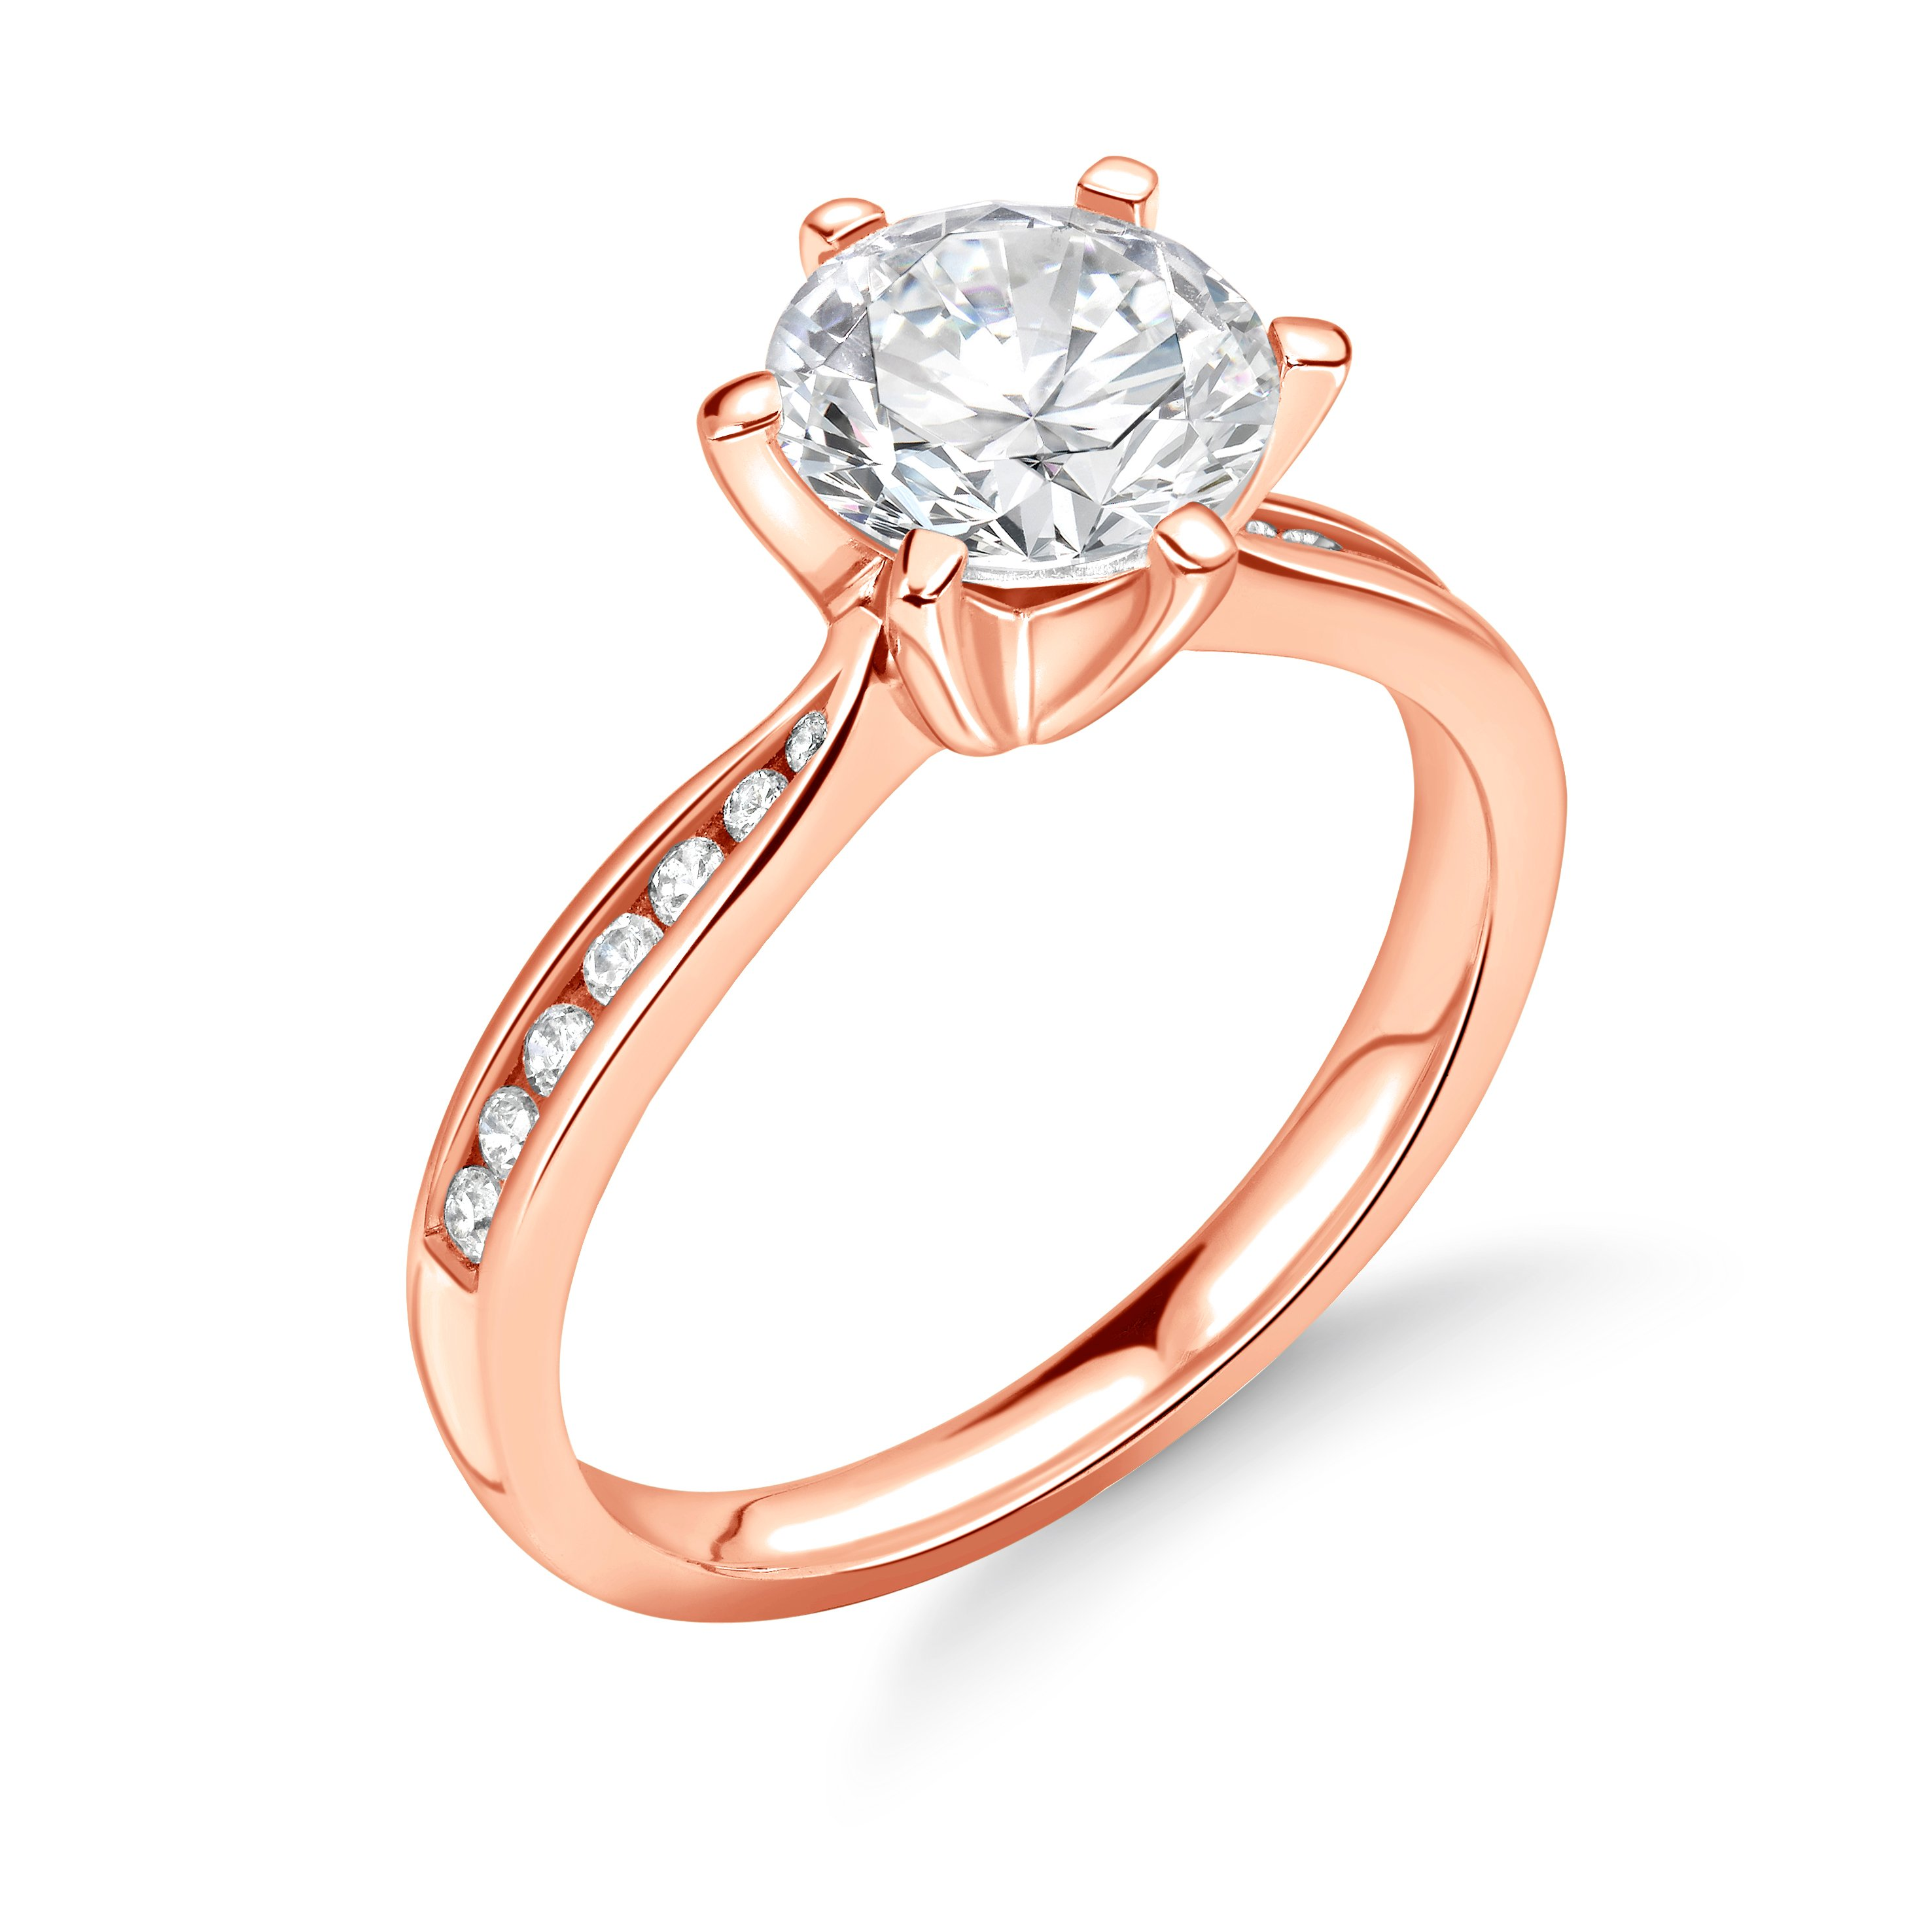 6 Claw Channel Setting Tapering Shoulder Engagement Ring